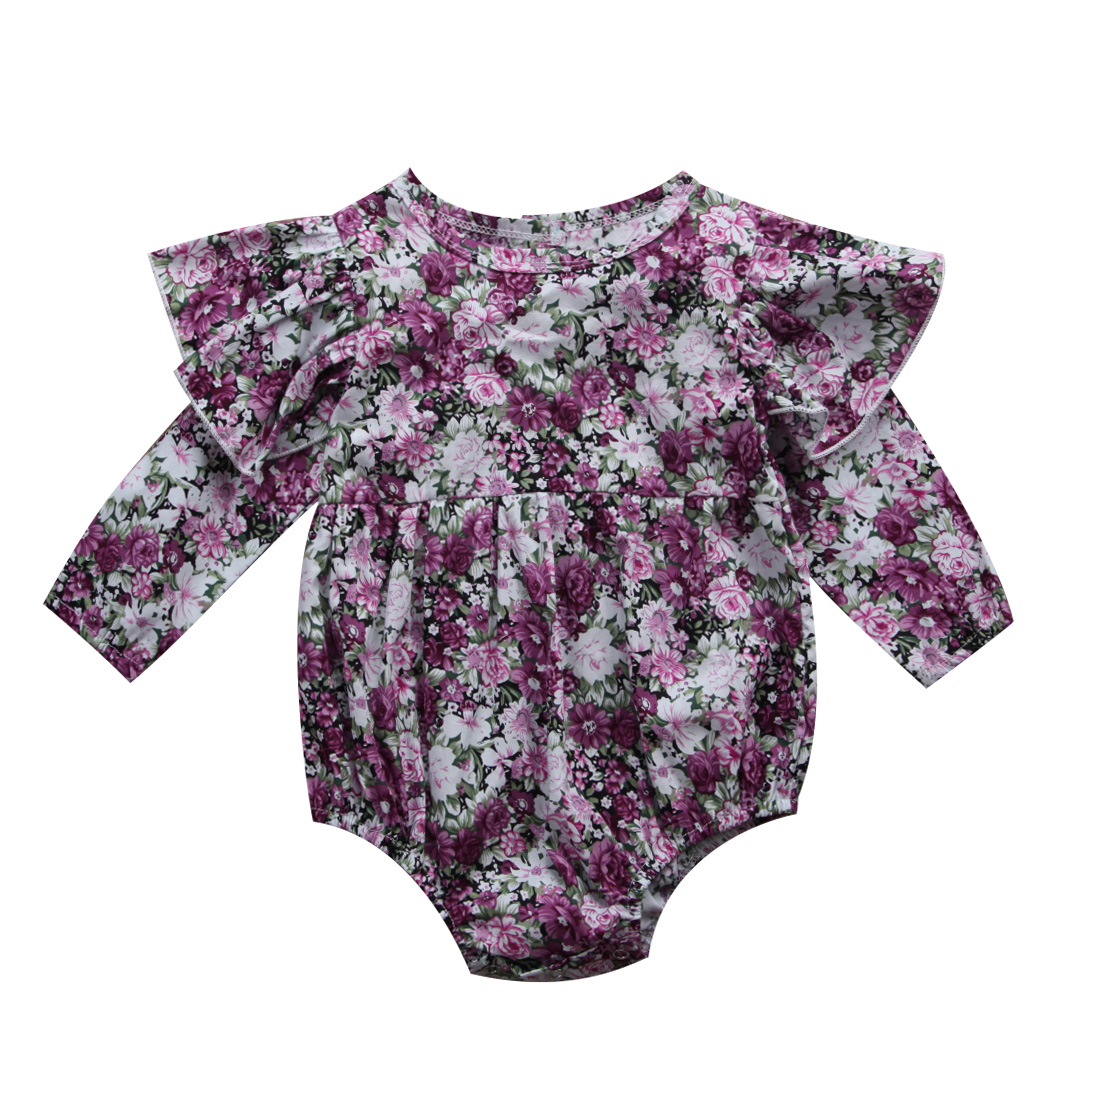 Baby Clothing Newborn Baby Girls Infant Kids Clothes Ruffles Floral Romper Jumpsuit Outfits Sunsuit Clothing 0-24M